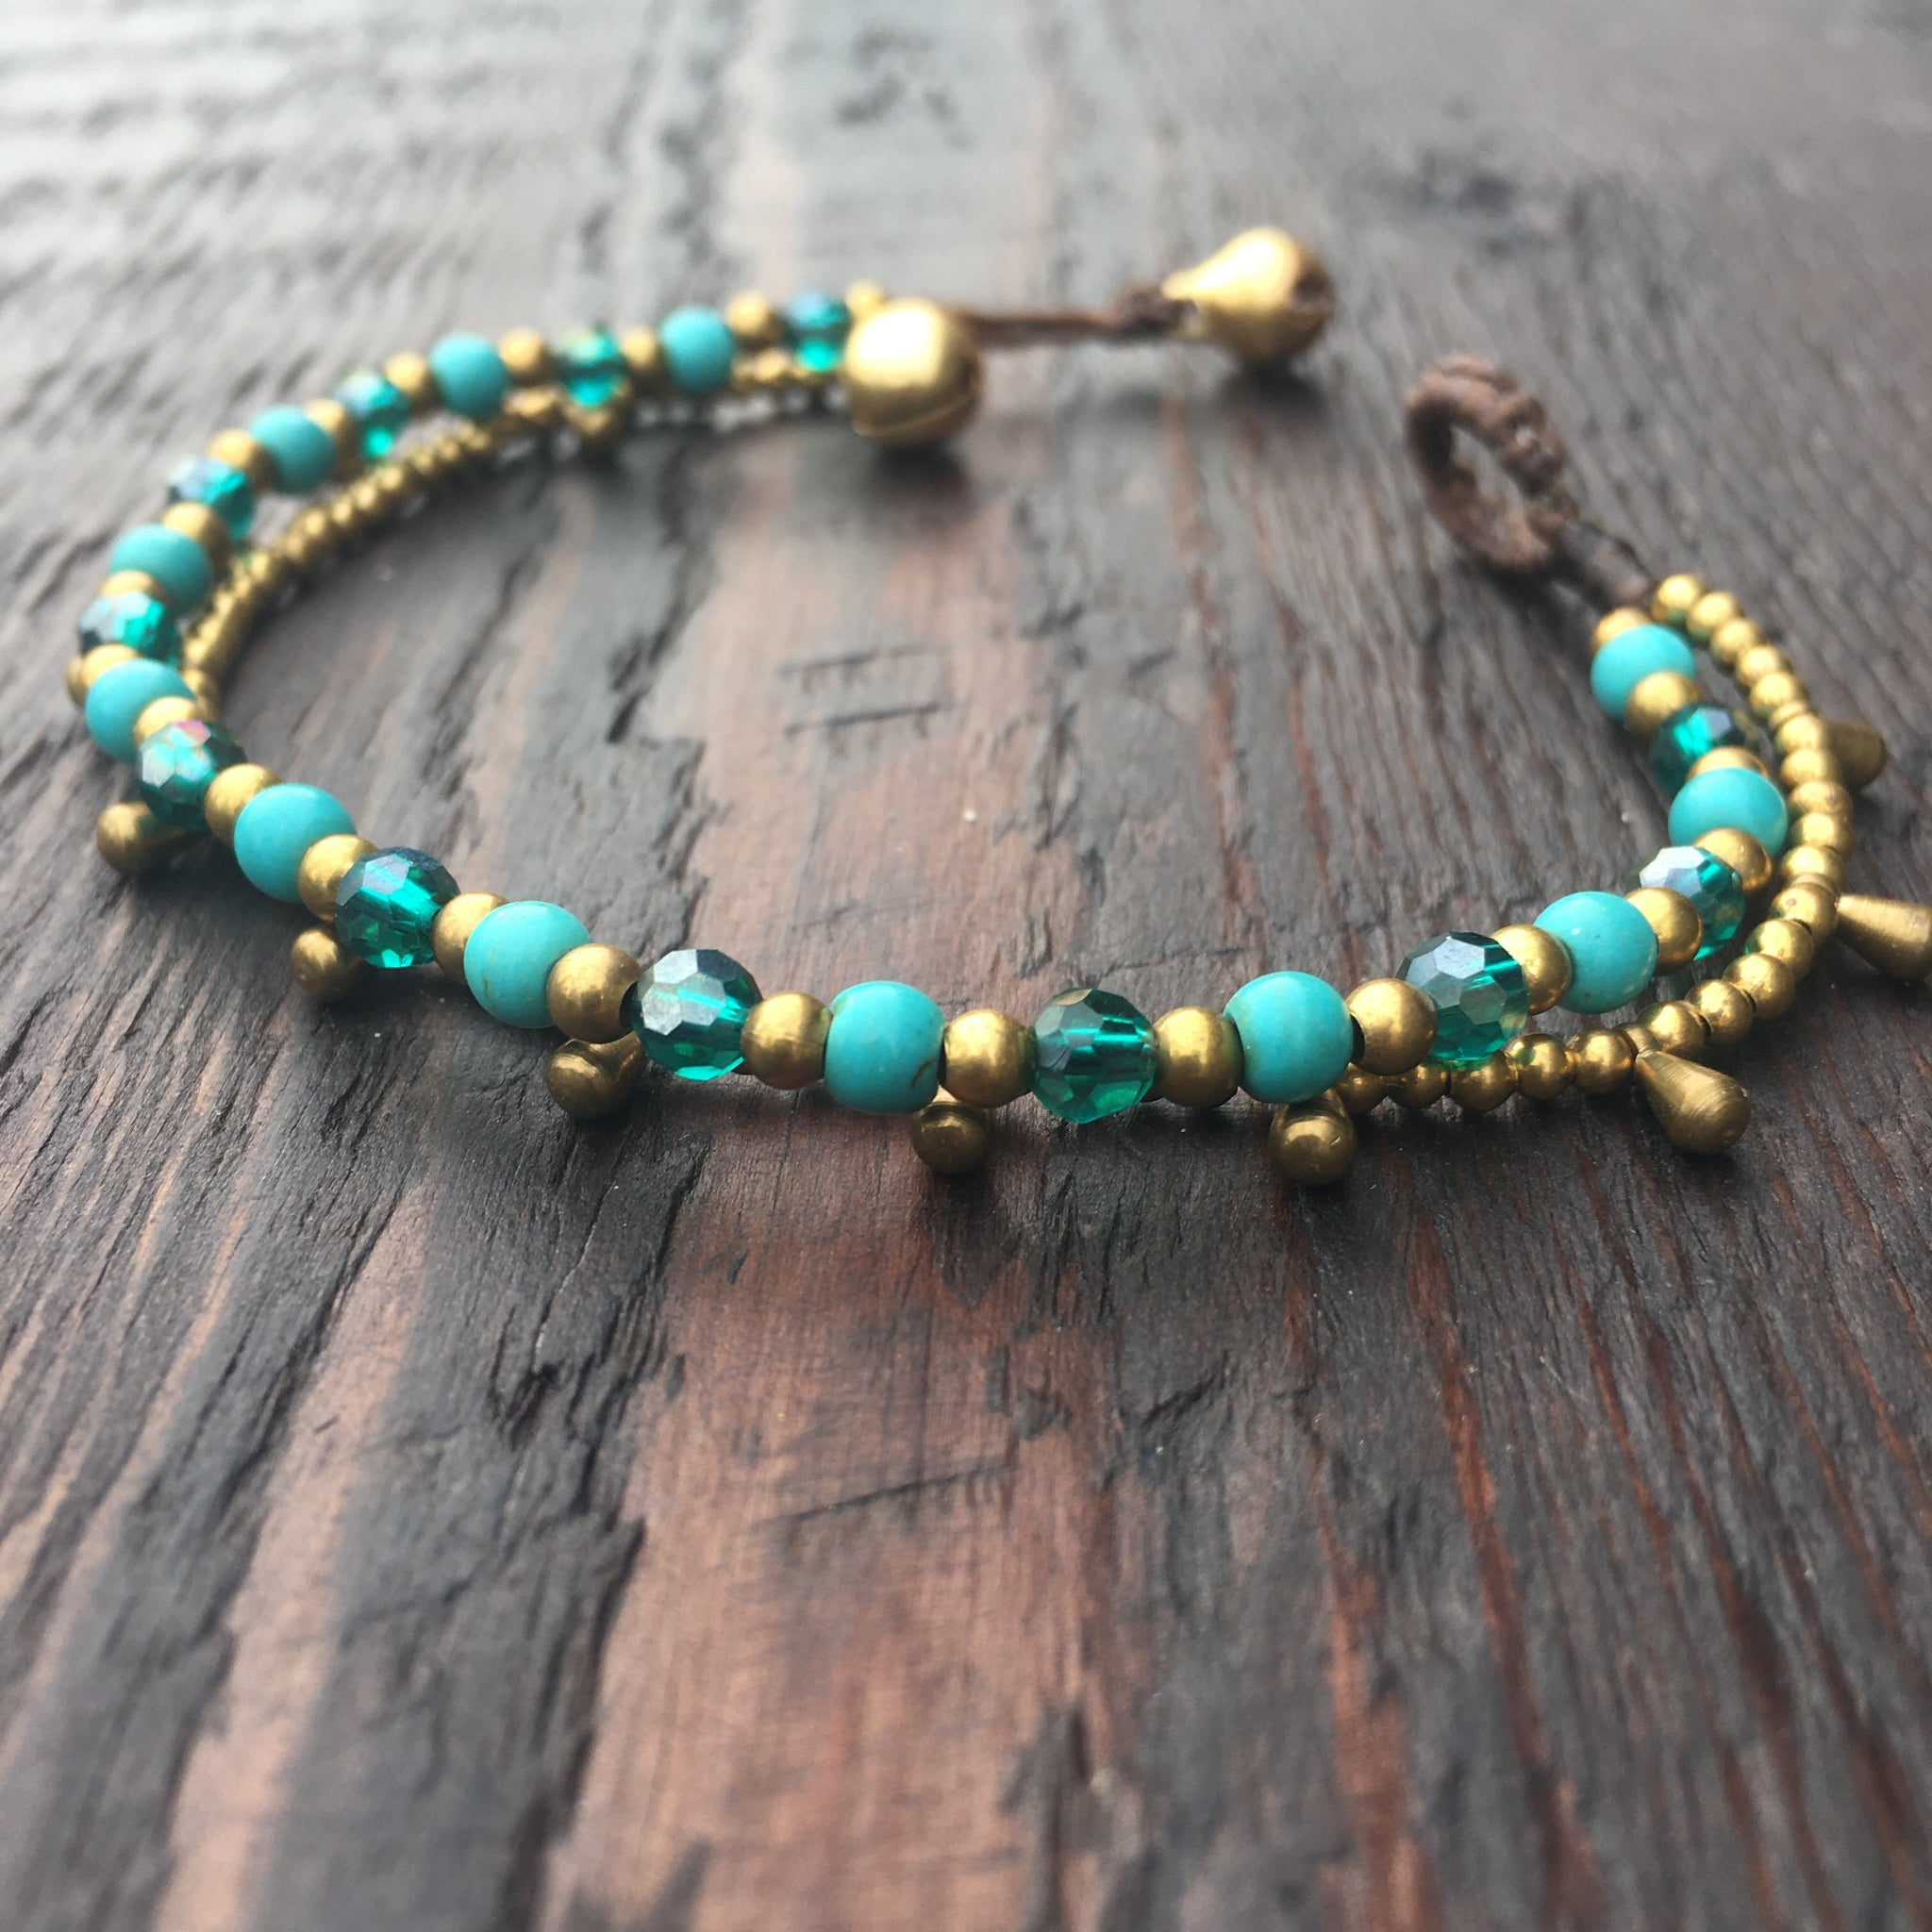 'Brass-Works' Bead Bracelet with Teardrops (Blue Turquoise & Iridescent Blue)